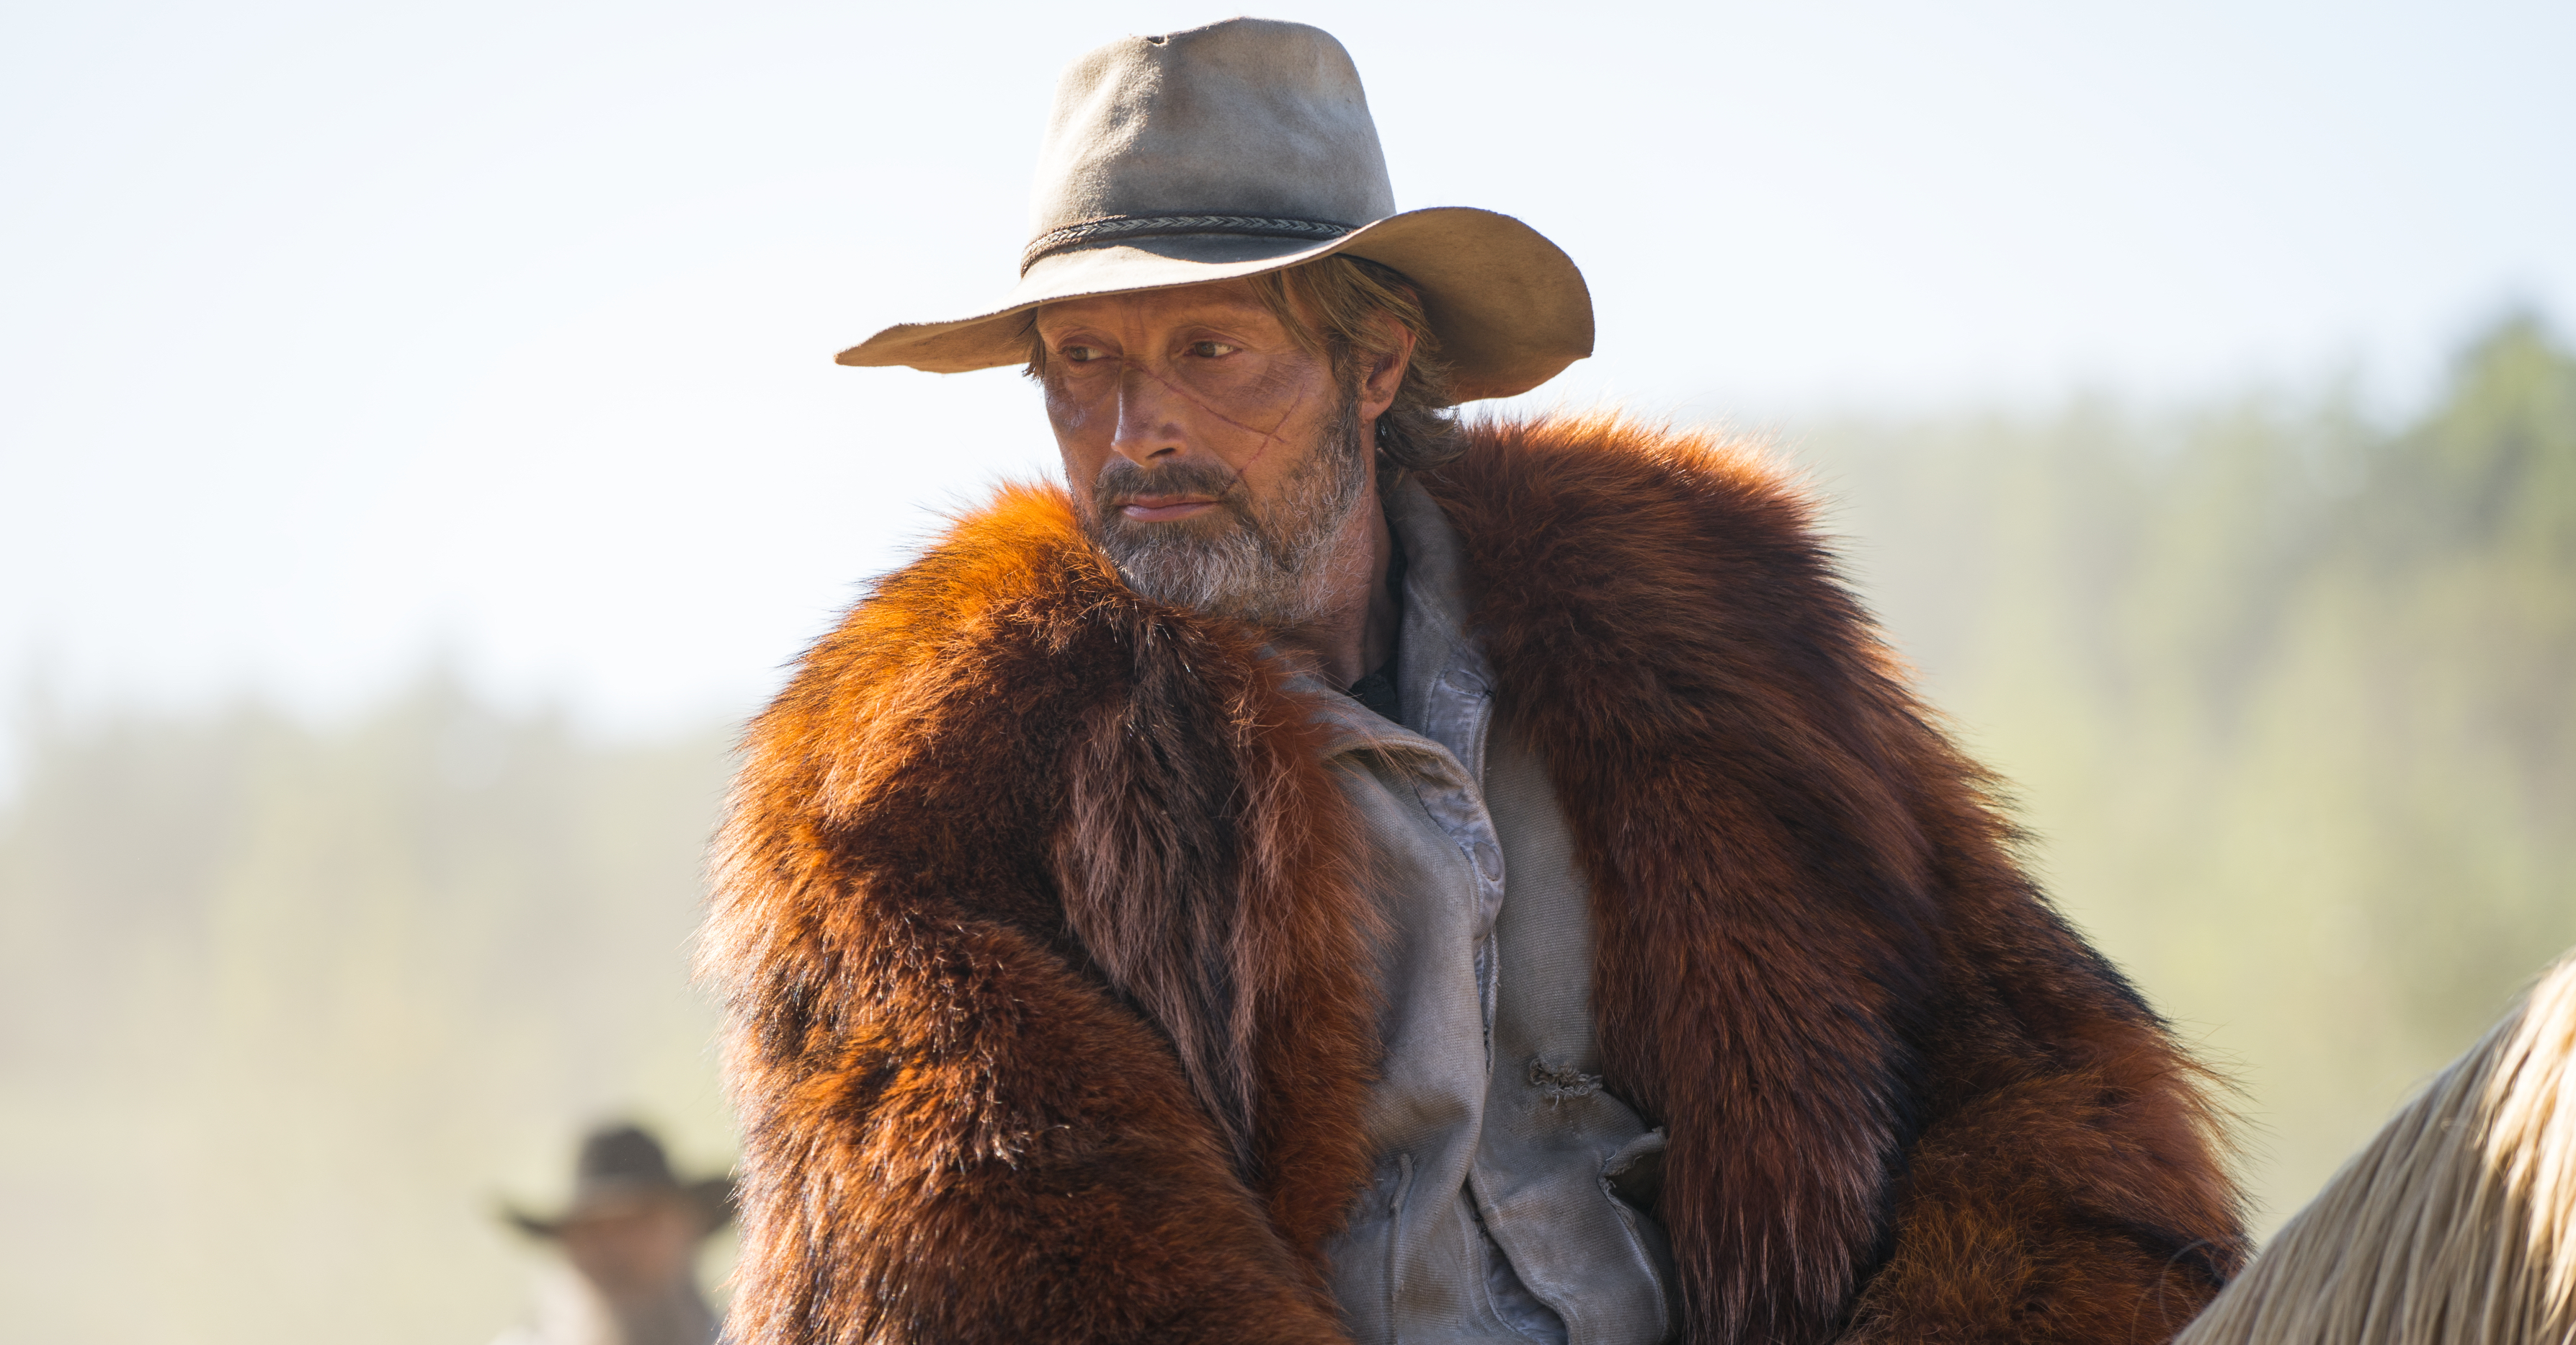 Mads Mikkelsen as Mayor Prentiss in Chaos Walking. Photo Credit: Murray Close